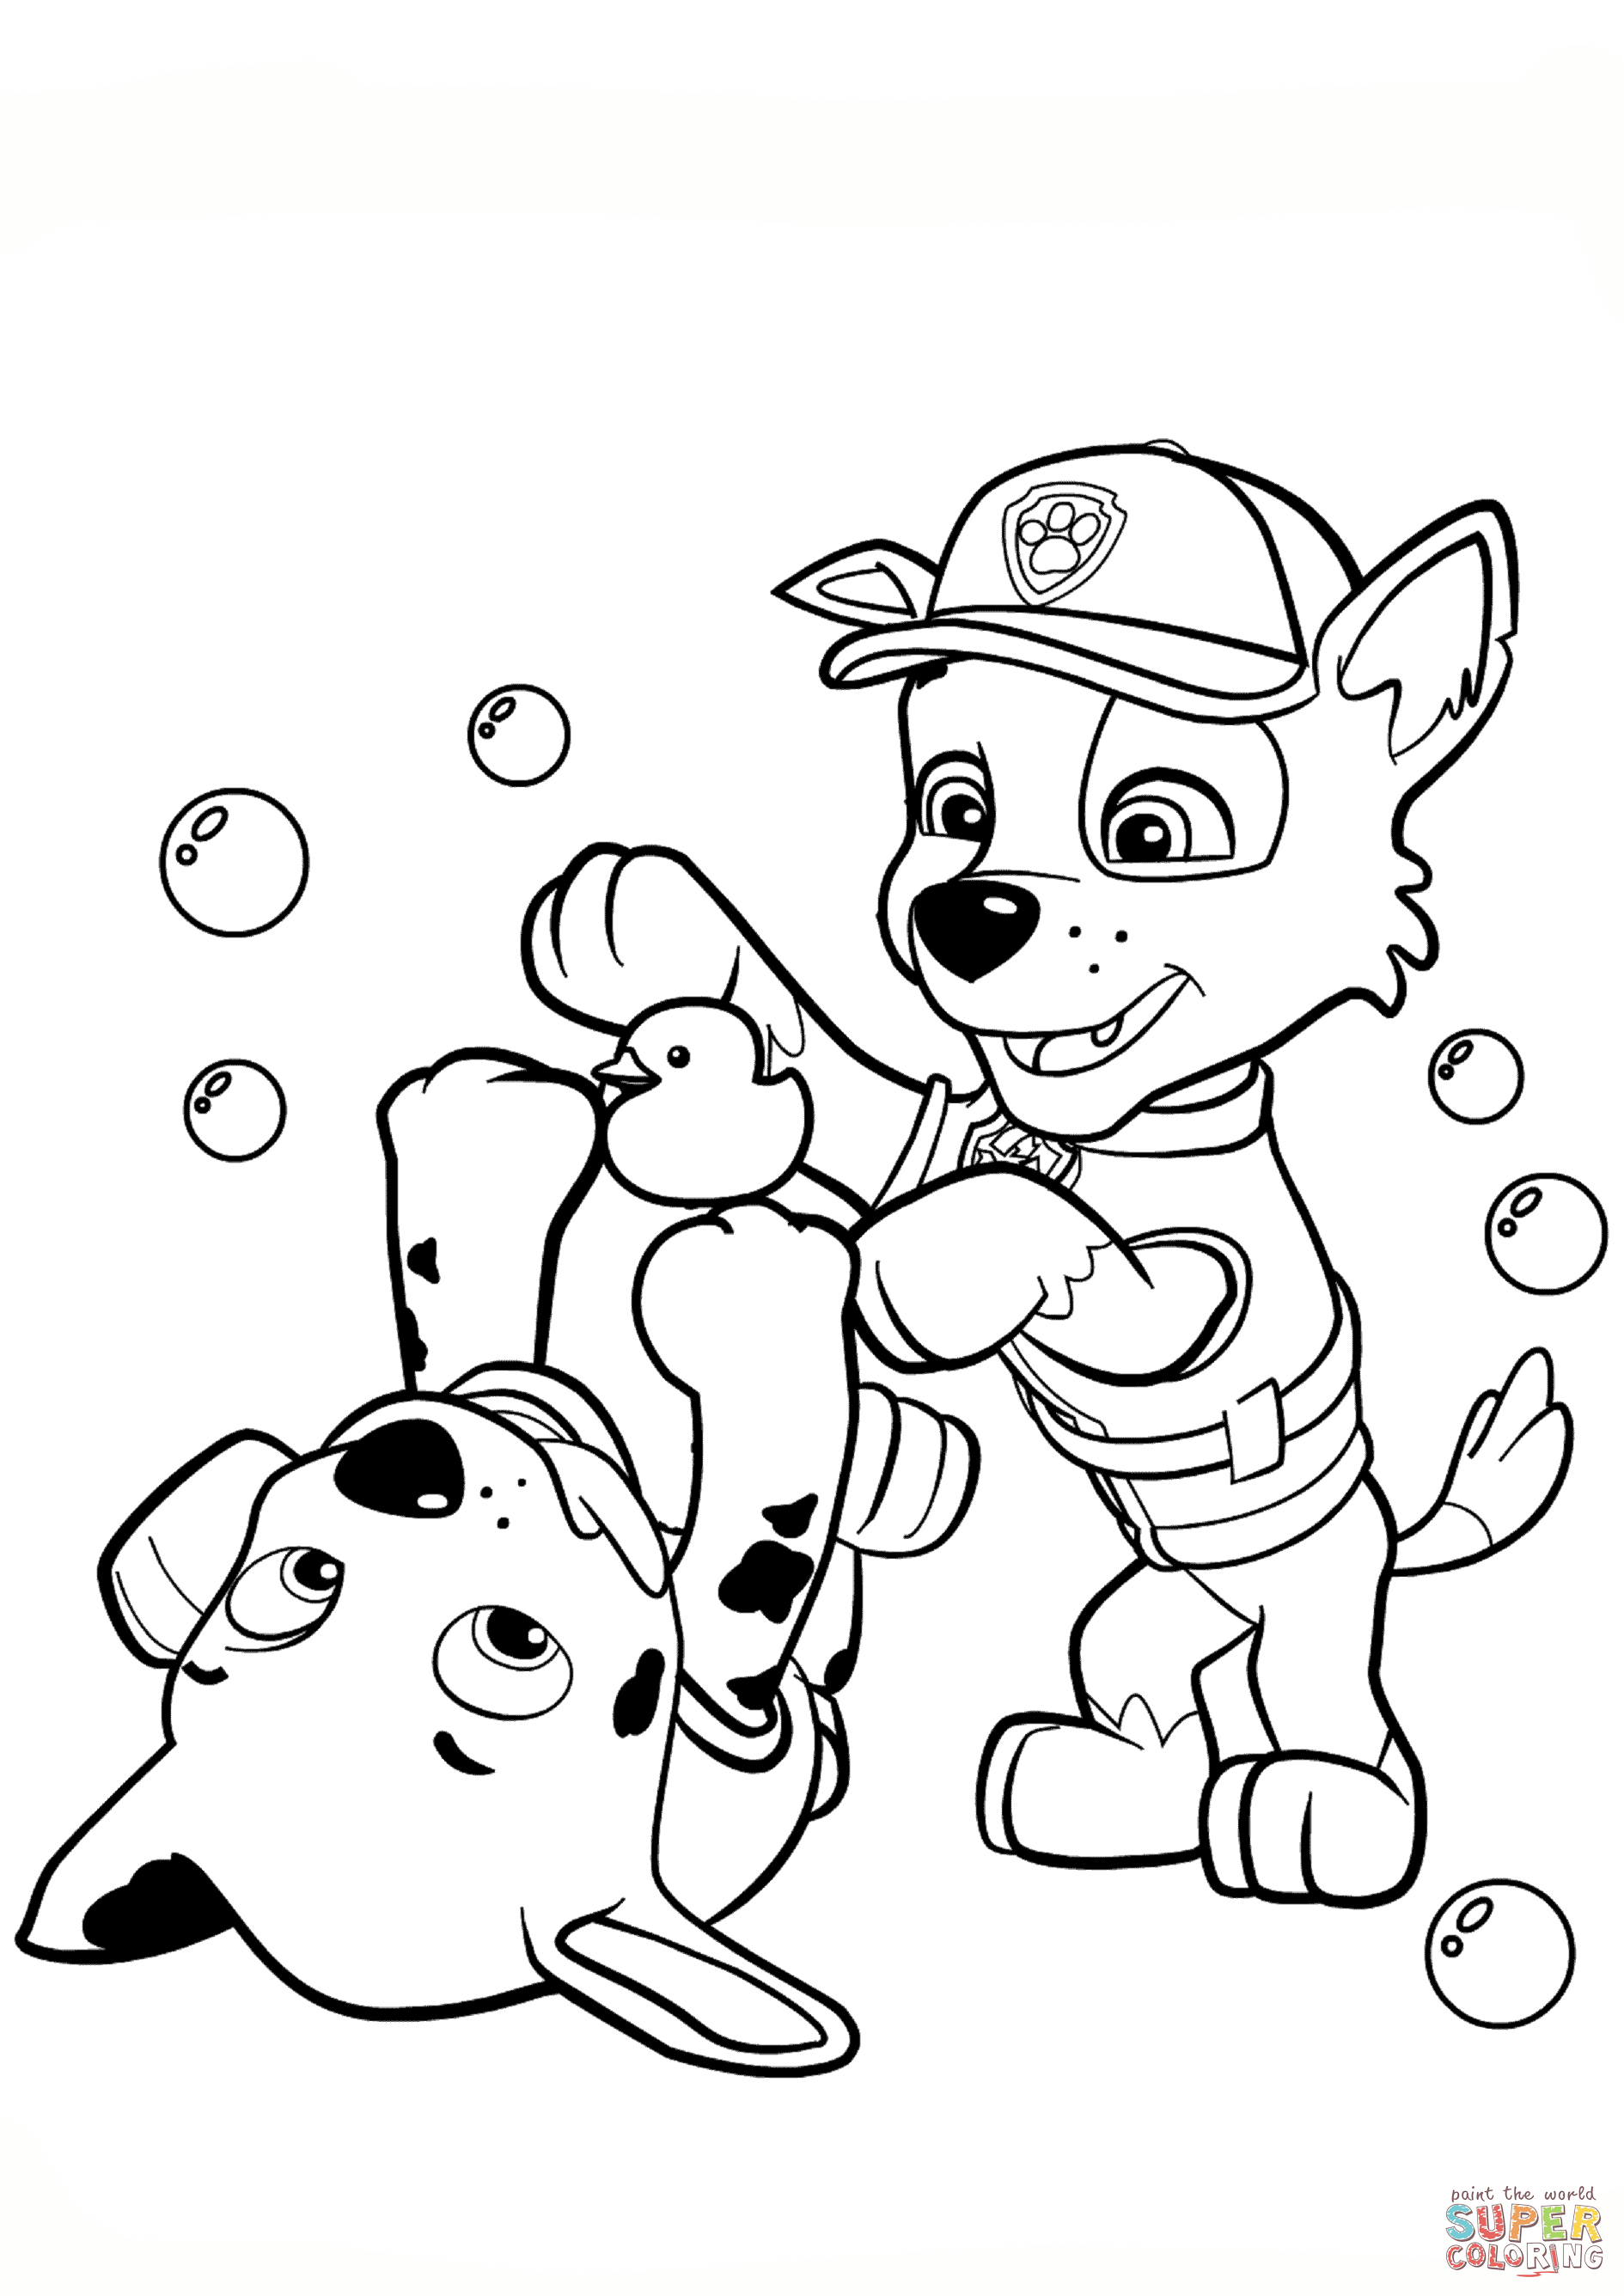 Paw Patrol Rocky And Marshall Coloring Page | Free Printable - Free Printable Paw Patrol Coloring Pages